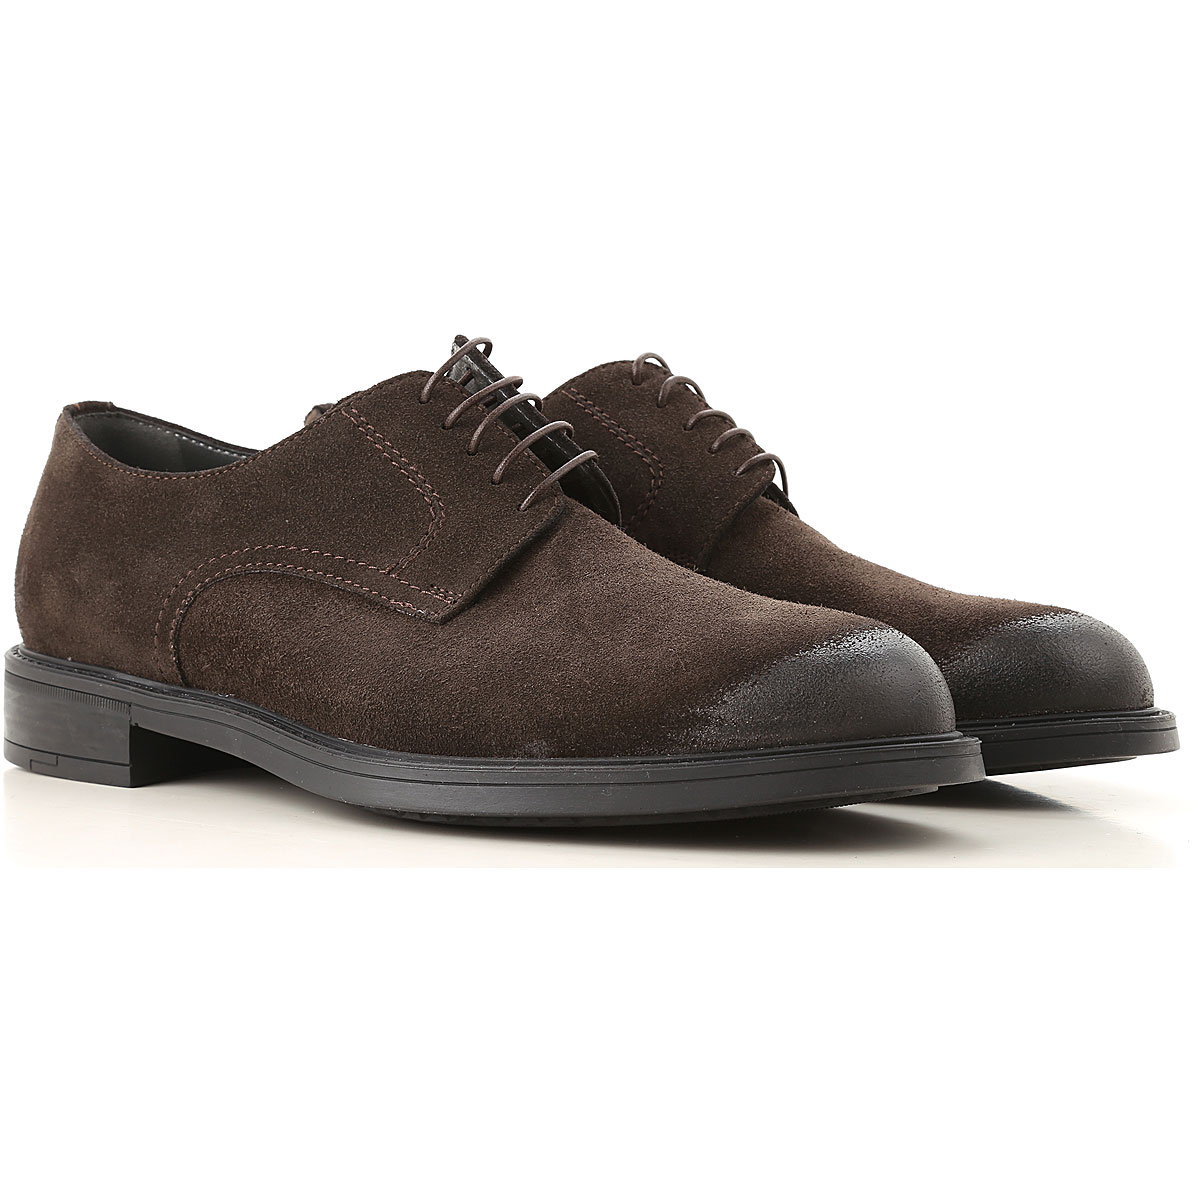 Moreschi Lace Up Shoes for Men Oxfords Derbies and Brogues On Sale USA - GOOFASH